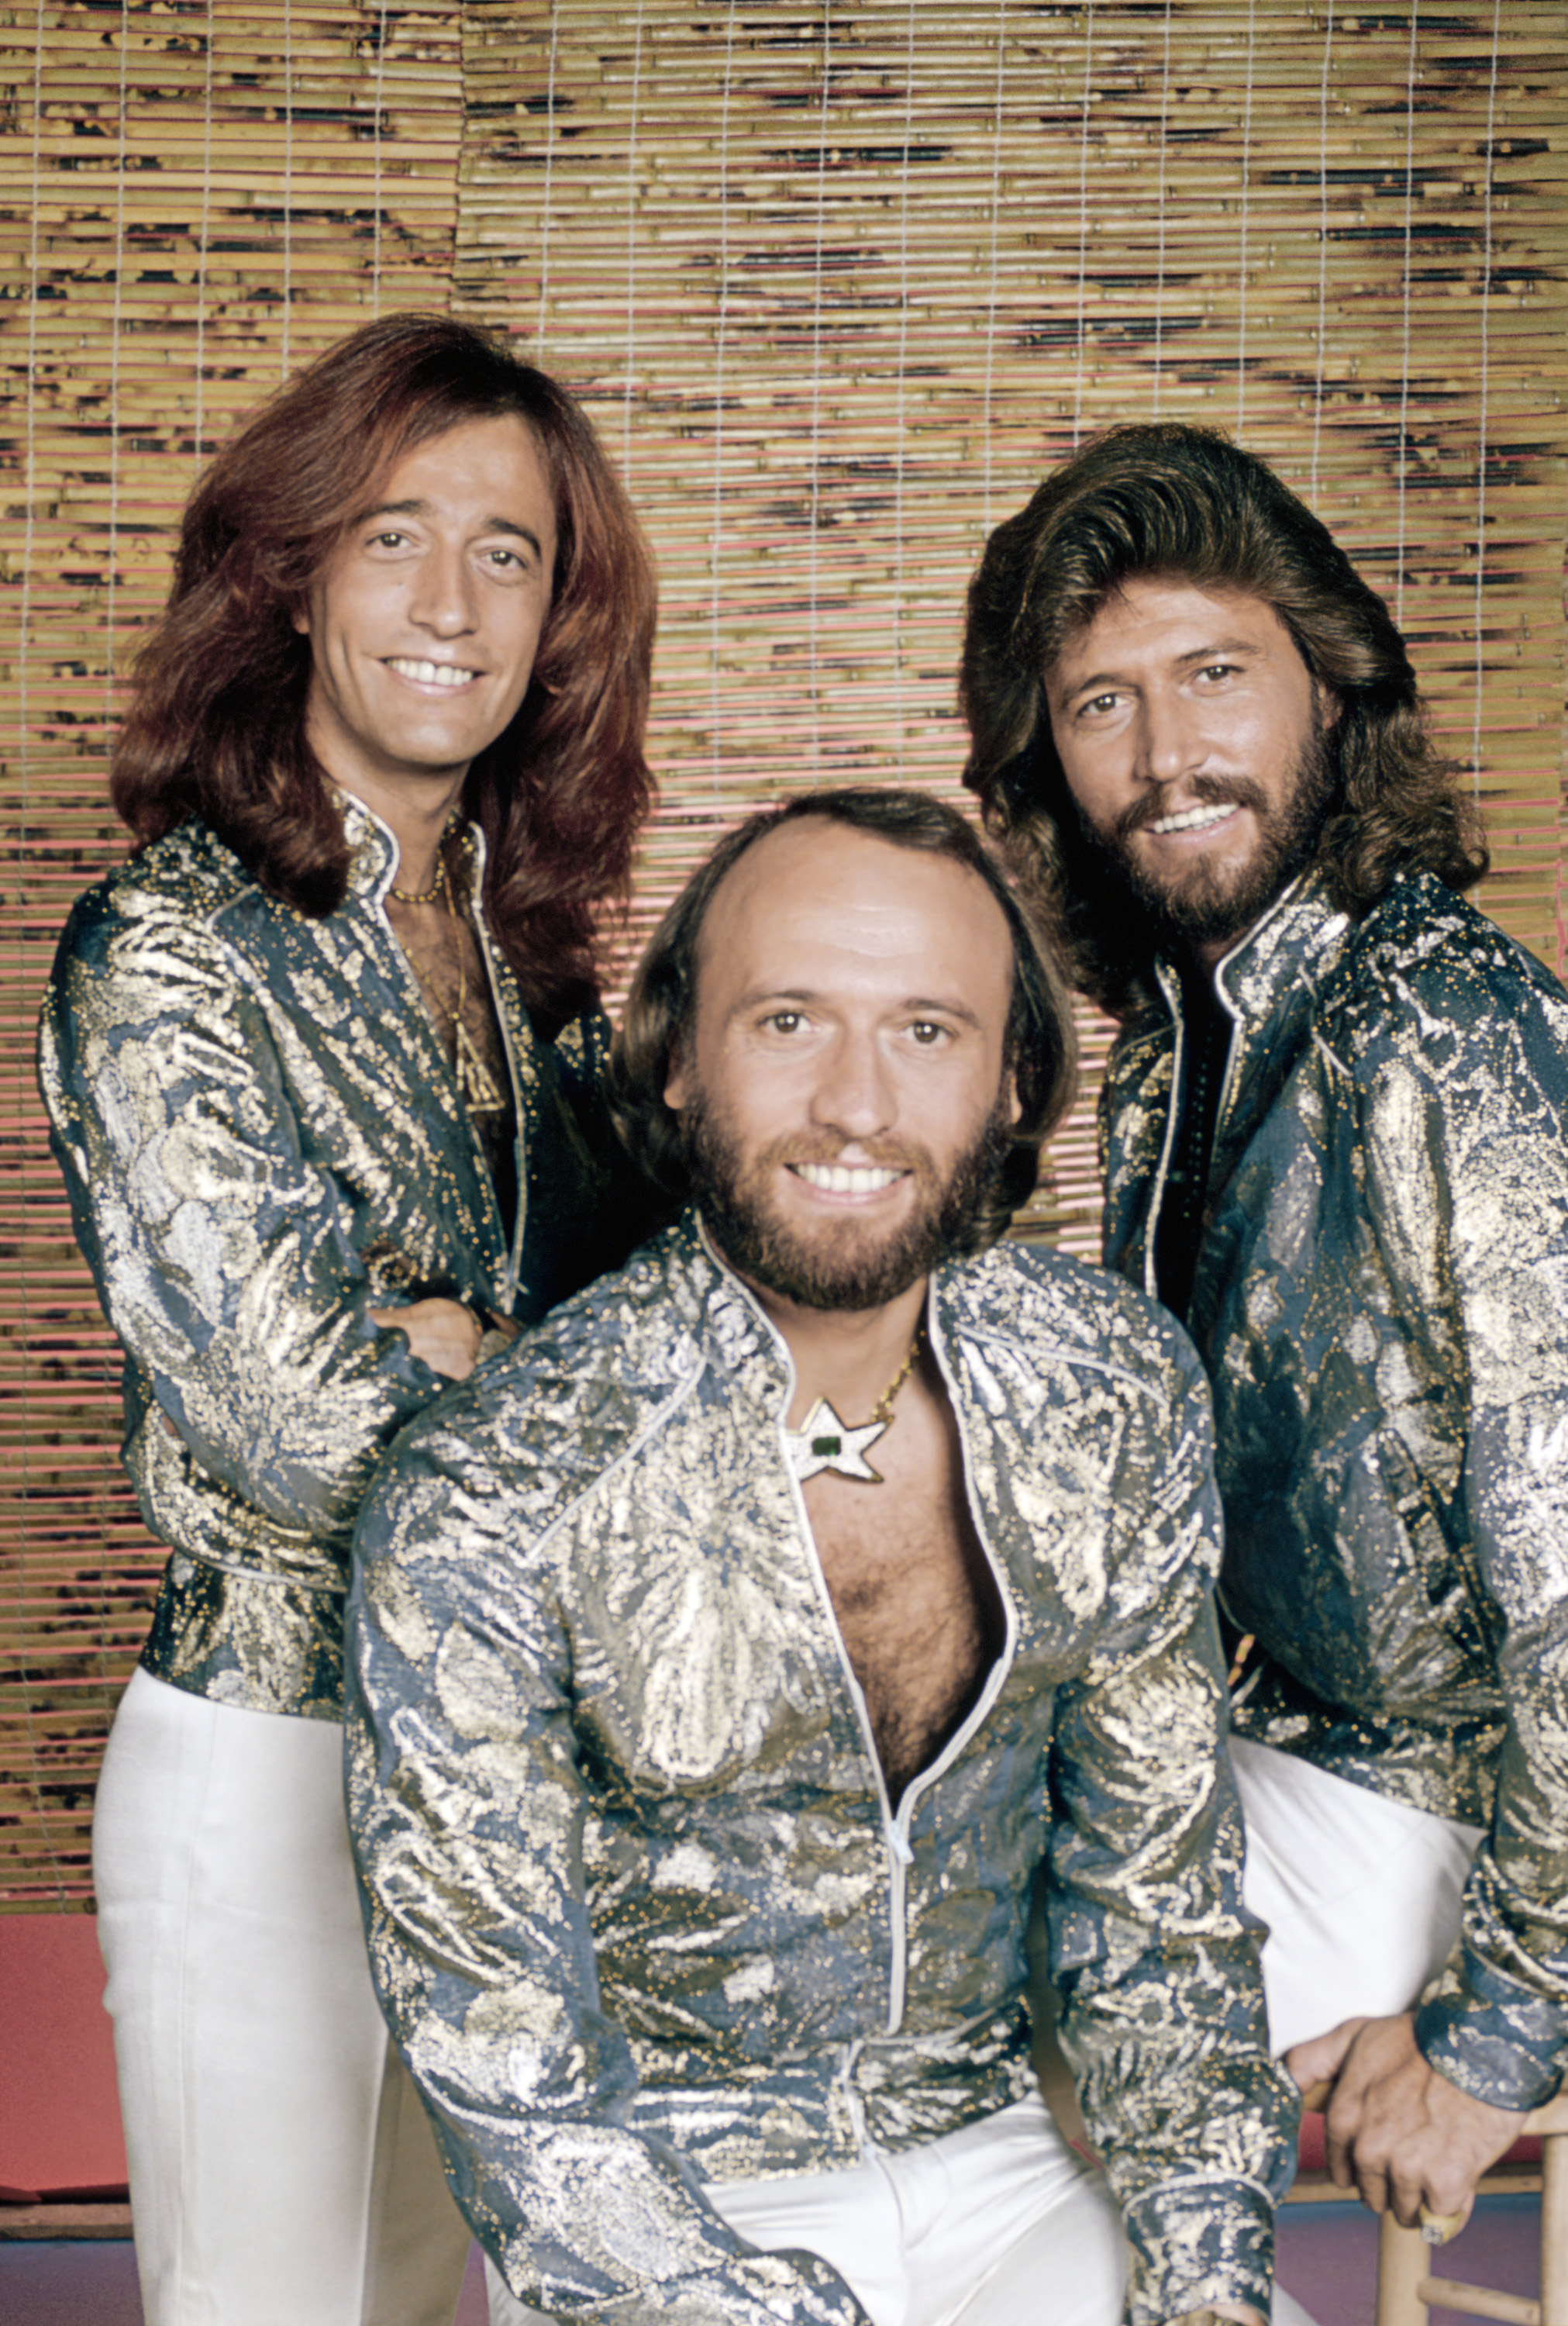 BEE GEES -- 1979 -- Pictured: The Bee Gees: (l-r) Robin Gibb, Maurice Gibb, Barry Gibb -- Photo by: NBCU Photo Bank